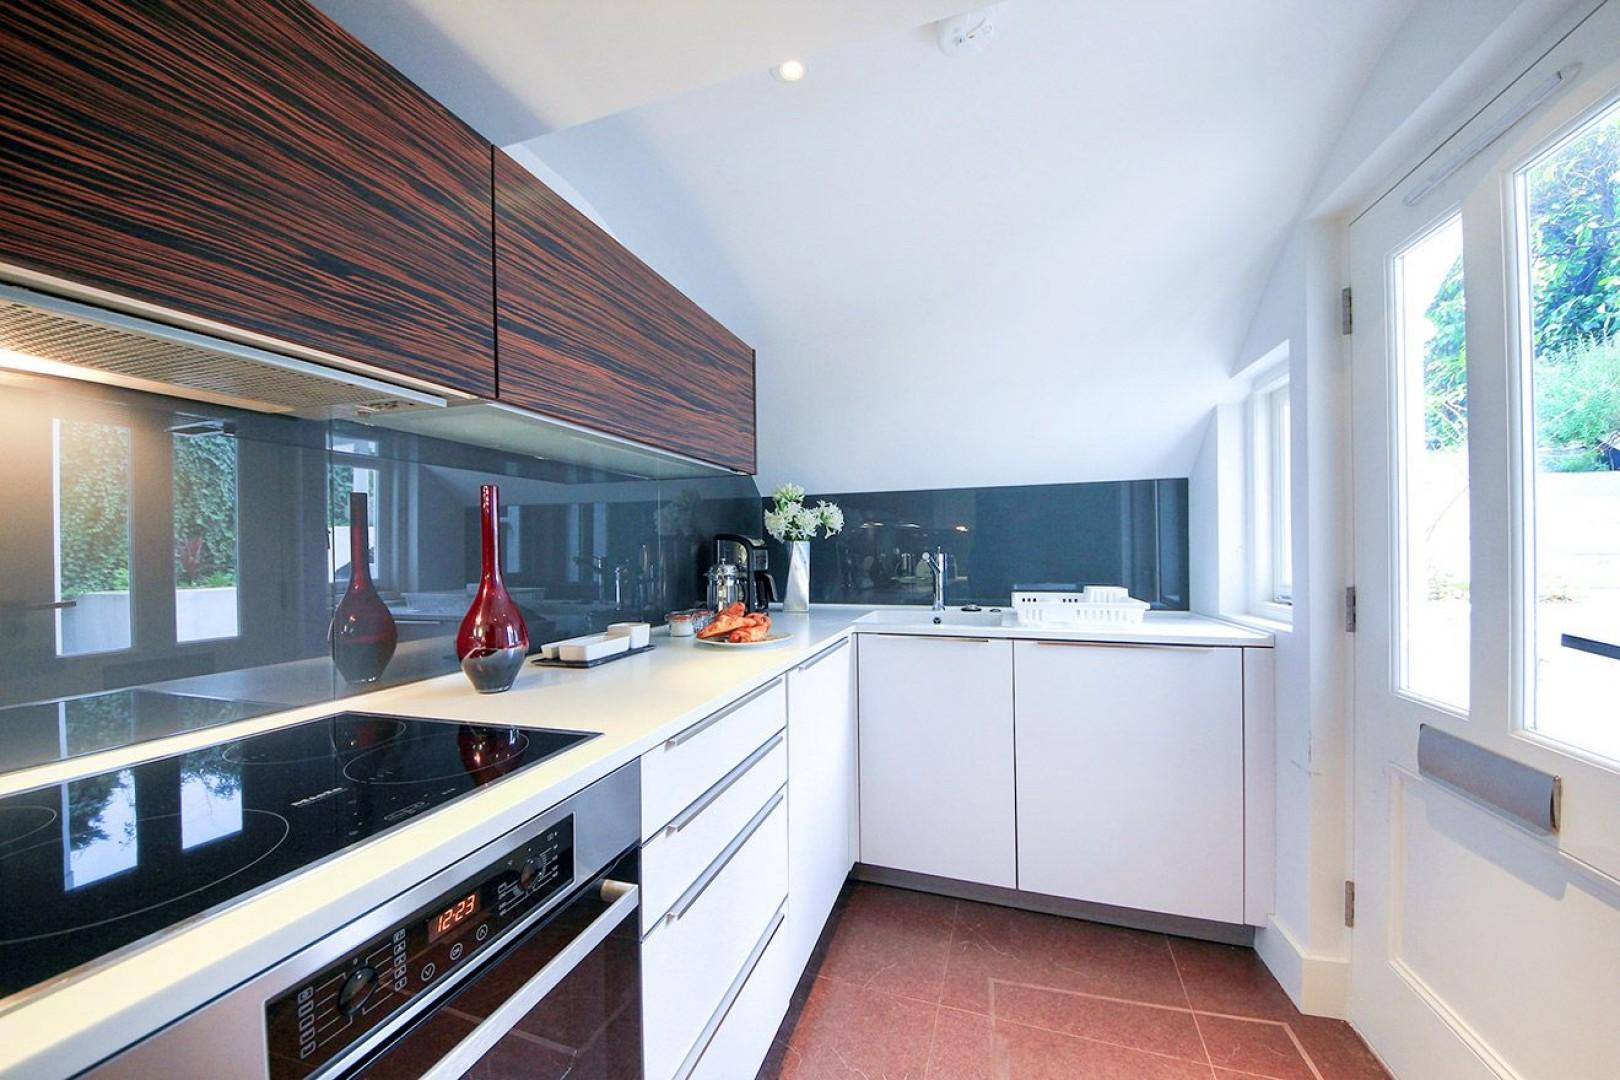 View towards the sink area of the stylish apartment kitchen